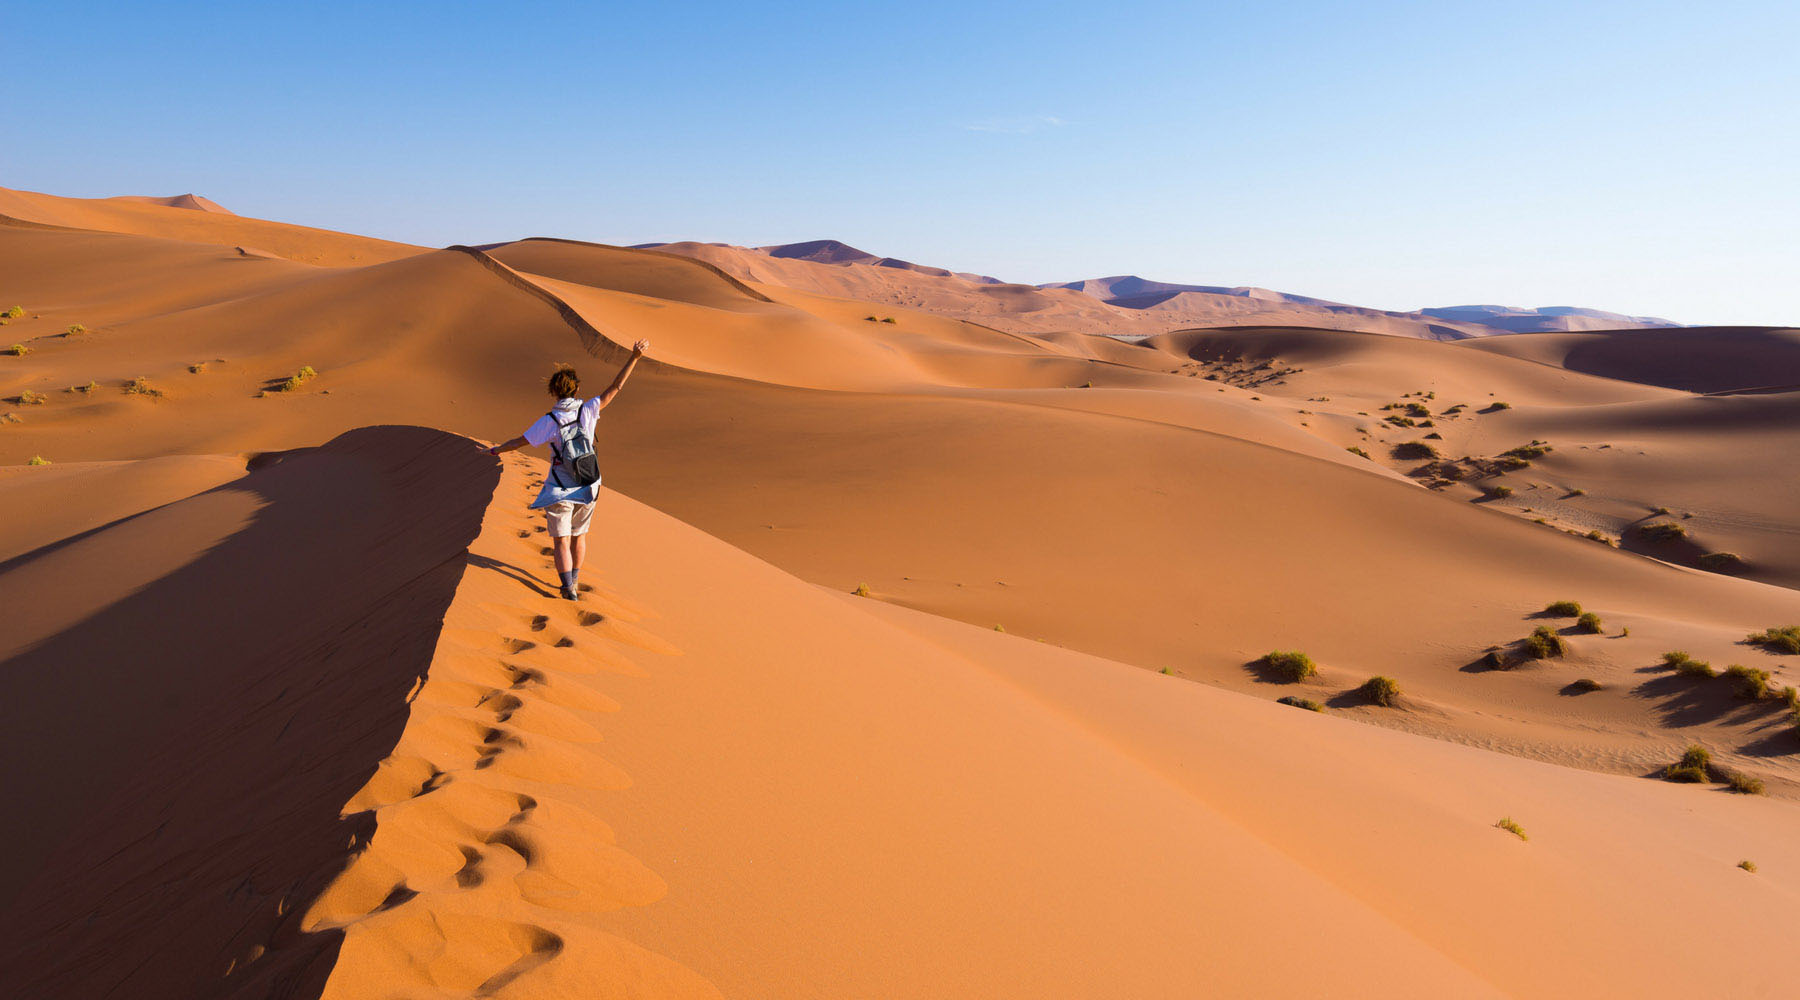 The desert in Namibia.